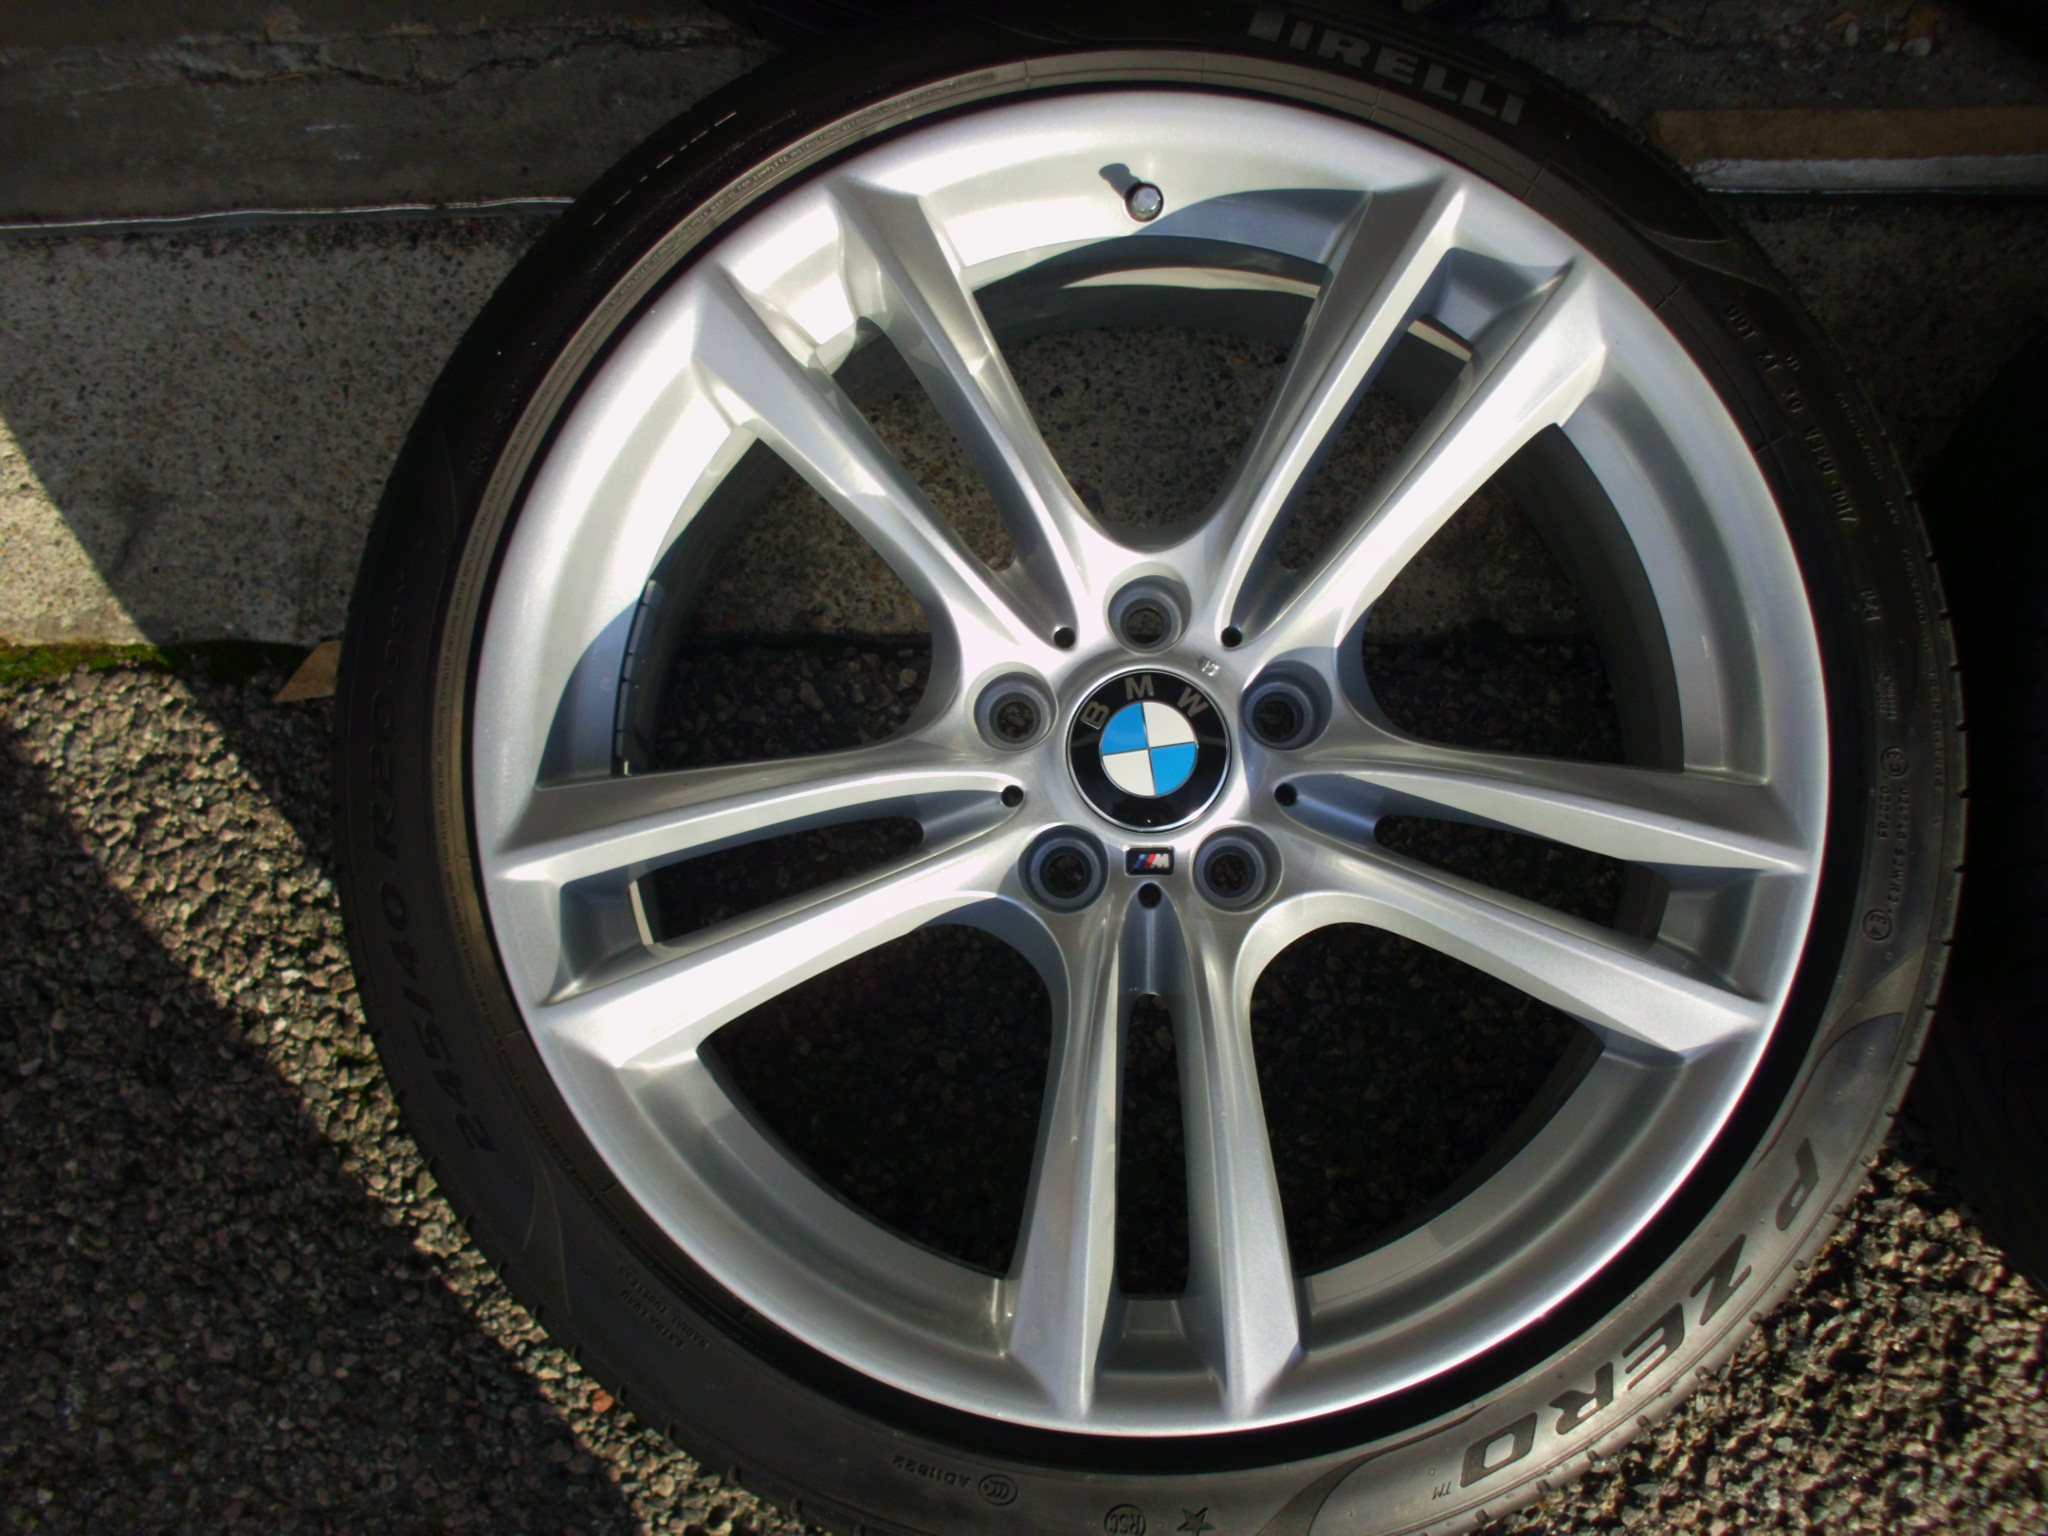 "USED 20"" GENUINE F07 STYLE 303M ALLOY WHEELS,FULLY REFURBISHED, WIDE REAR, INC GOOD RUNFLAT TYRES"